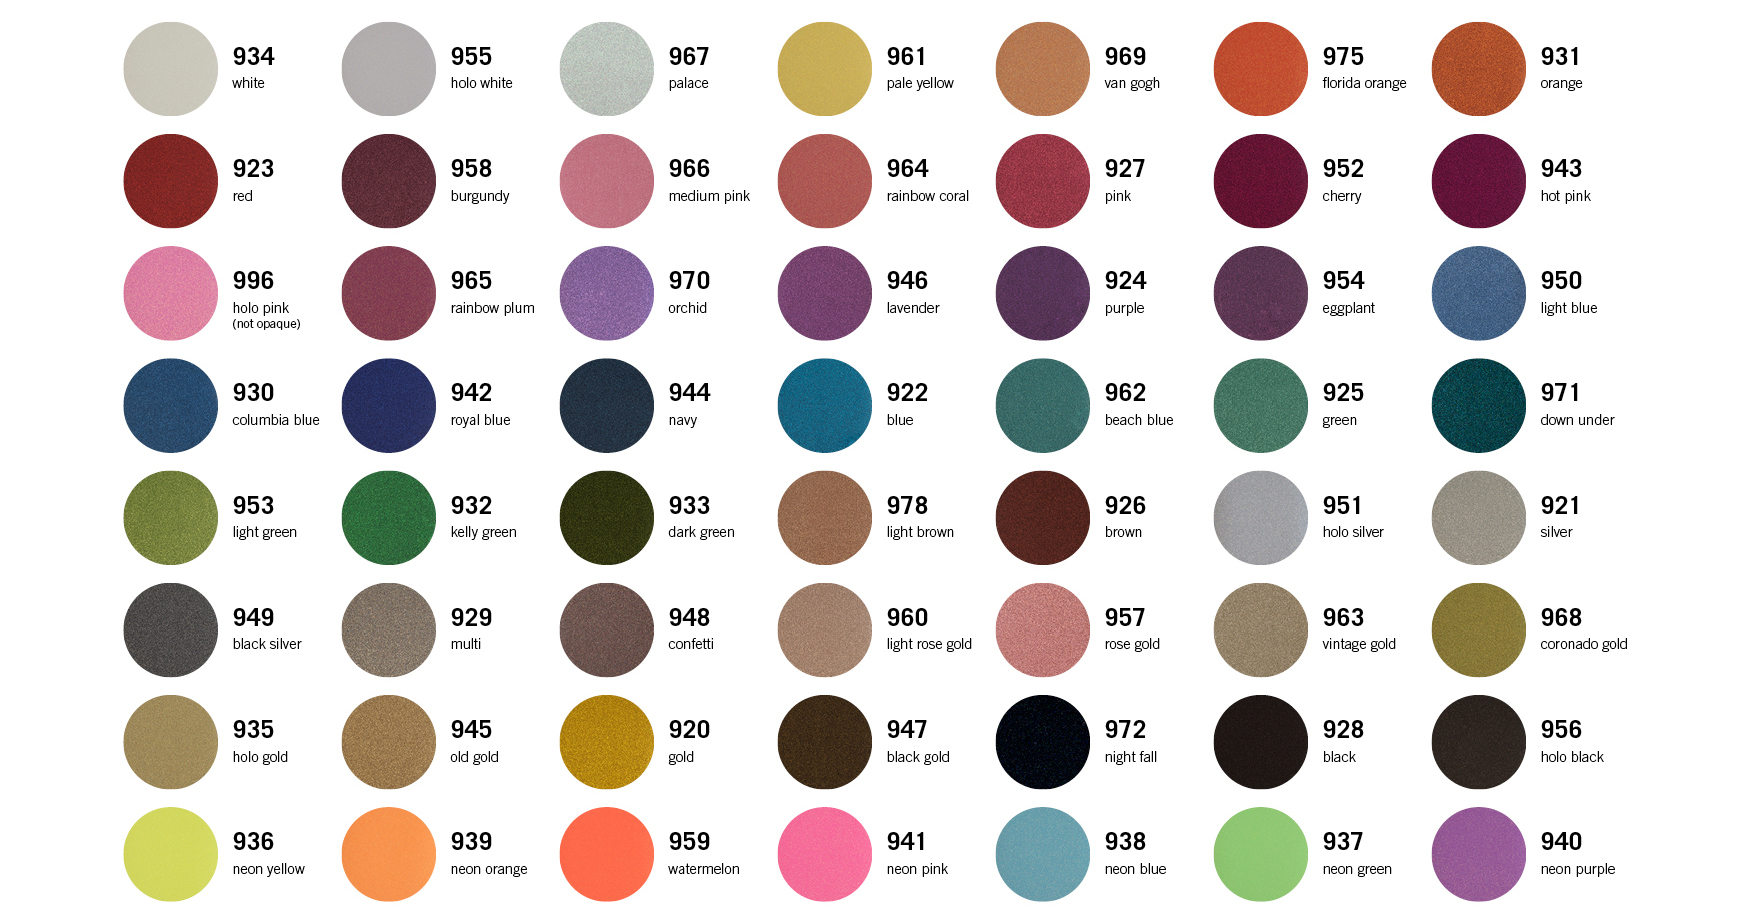 CAD-CUT_Color-selection_Glitter_Stahls-Europe_07-21